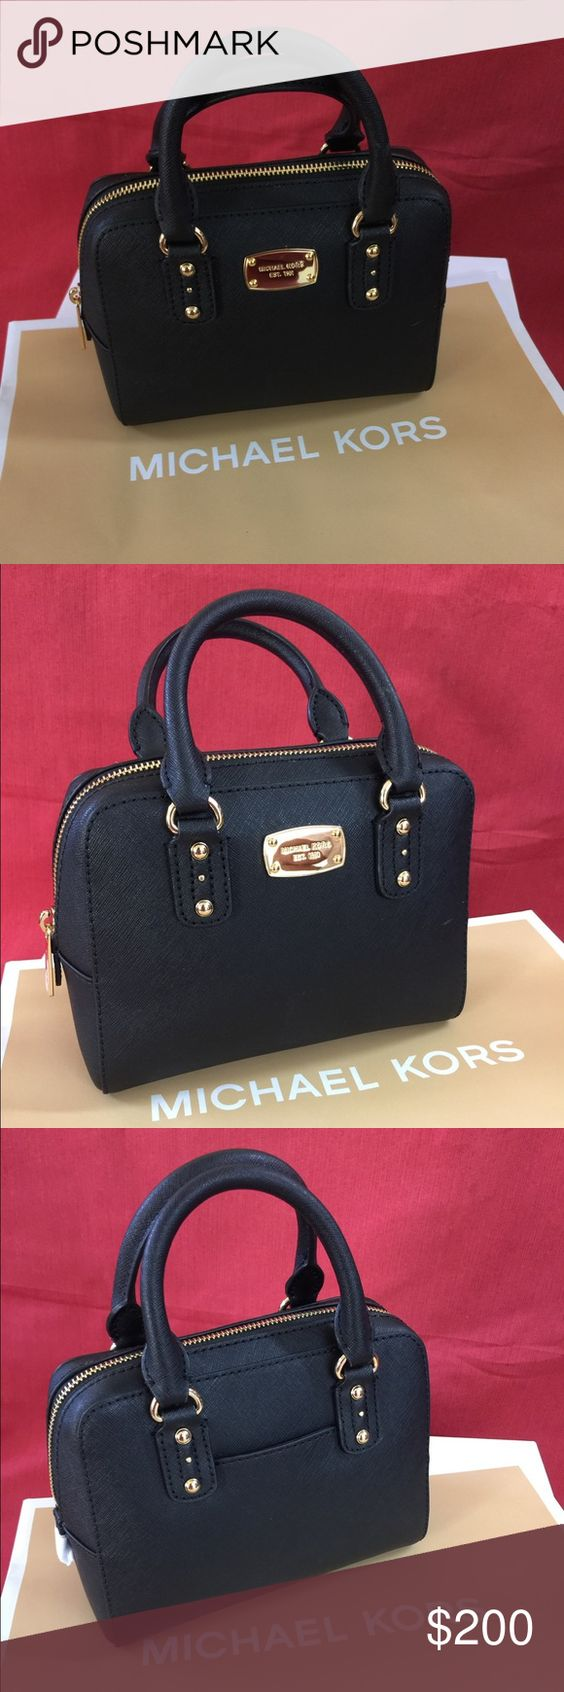 Michael Kors mini satchel 100% authentic Michael Kors mini satchel in the color black. Strap is inside purse to use as a cross body. Offers are welcomed Michael Kors Bags Crossbody Bags